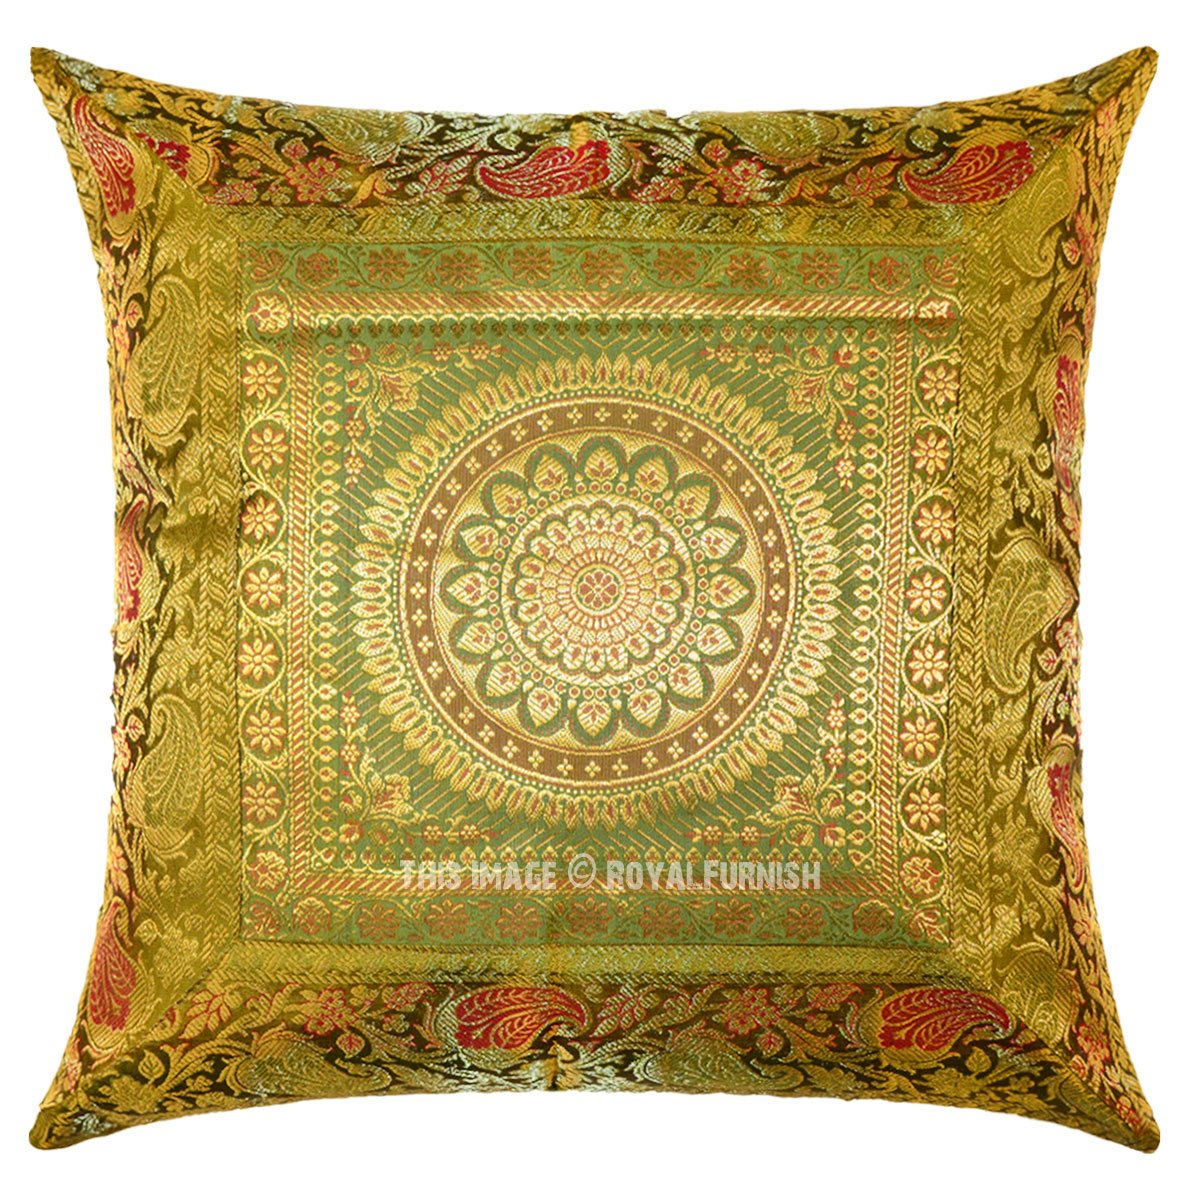 Green Floral Medallion Circle 16x16 Decorative Silk Throw